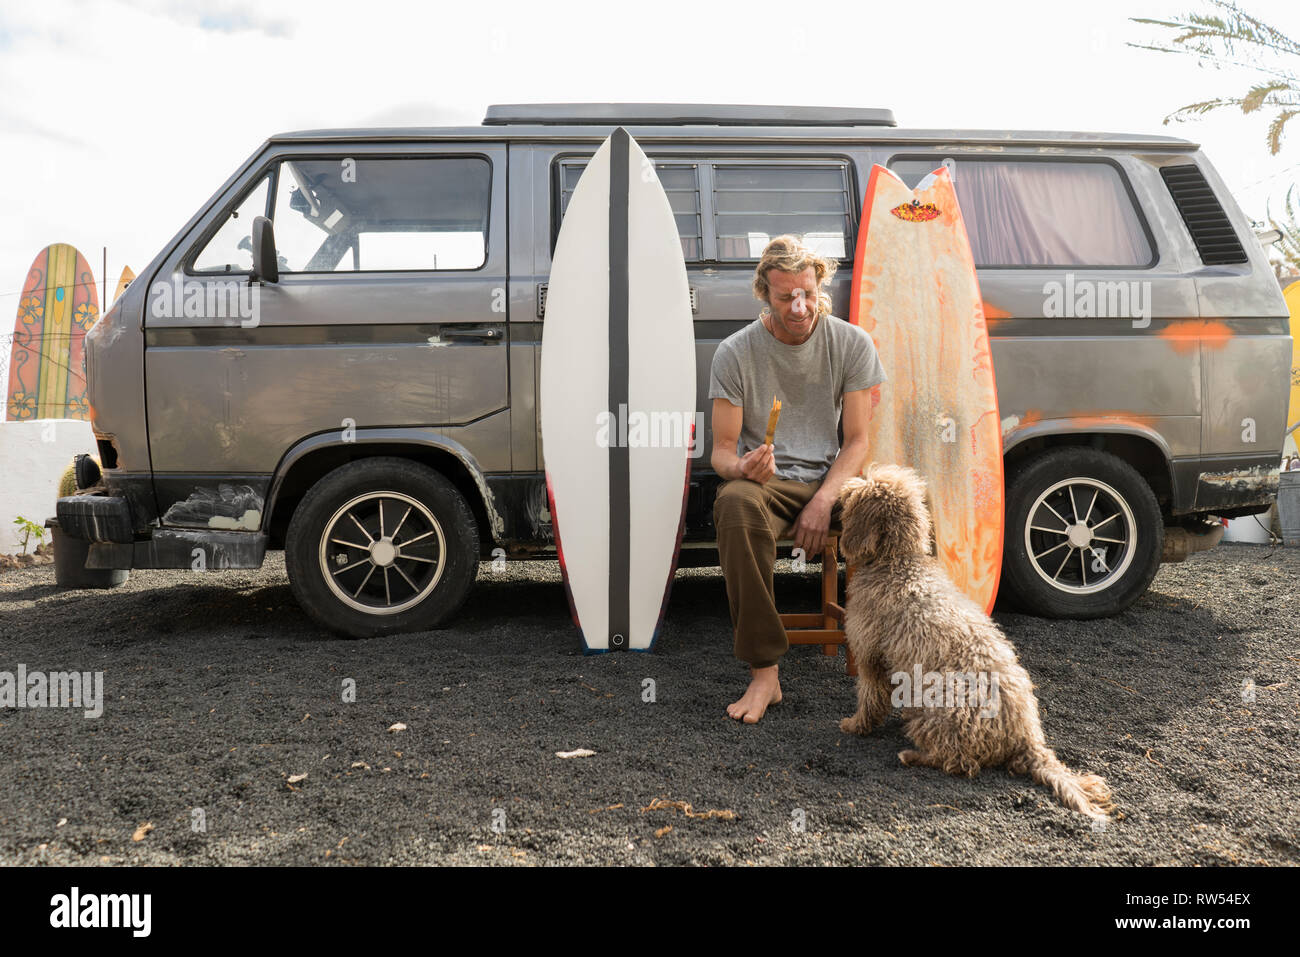 Man standing near surf boards and van - Stock Image